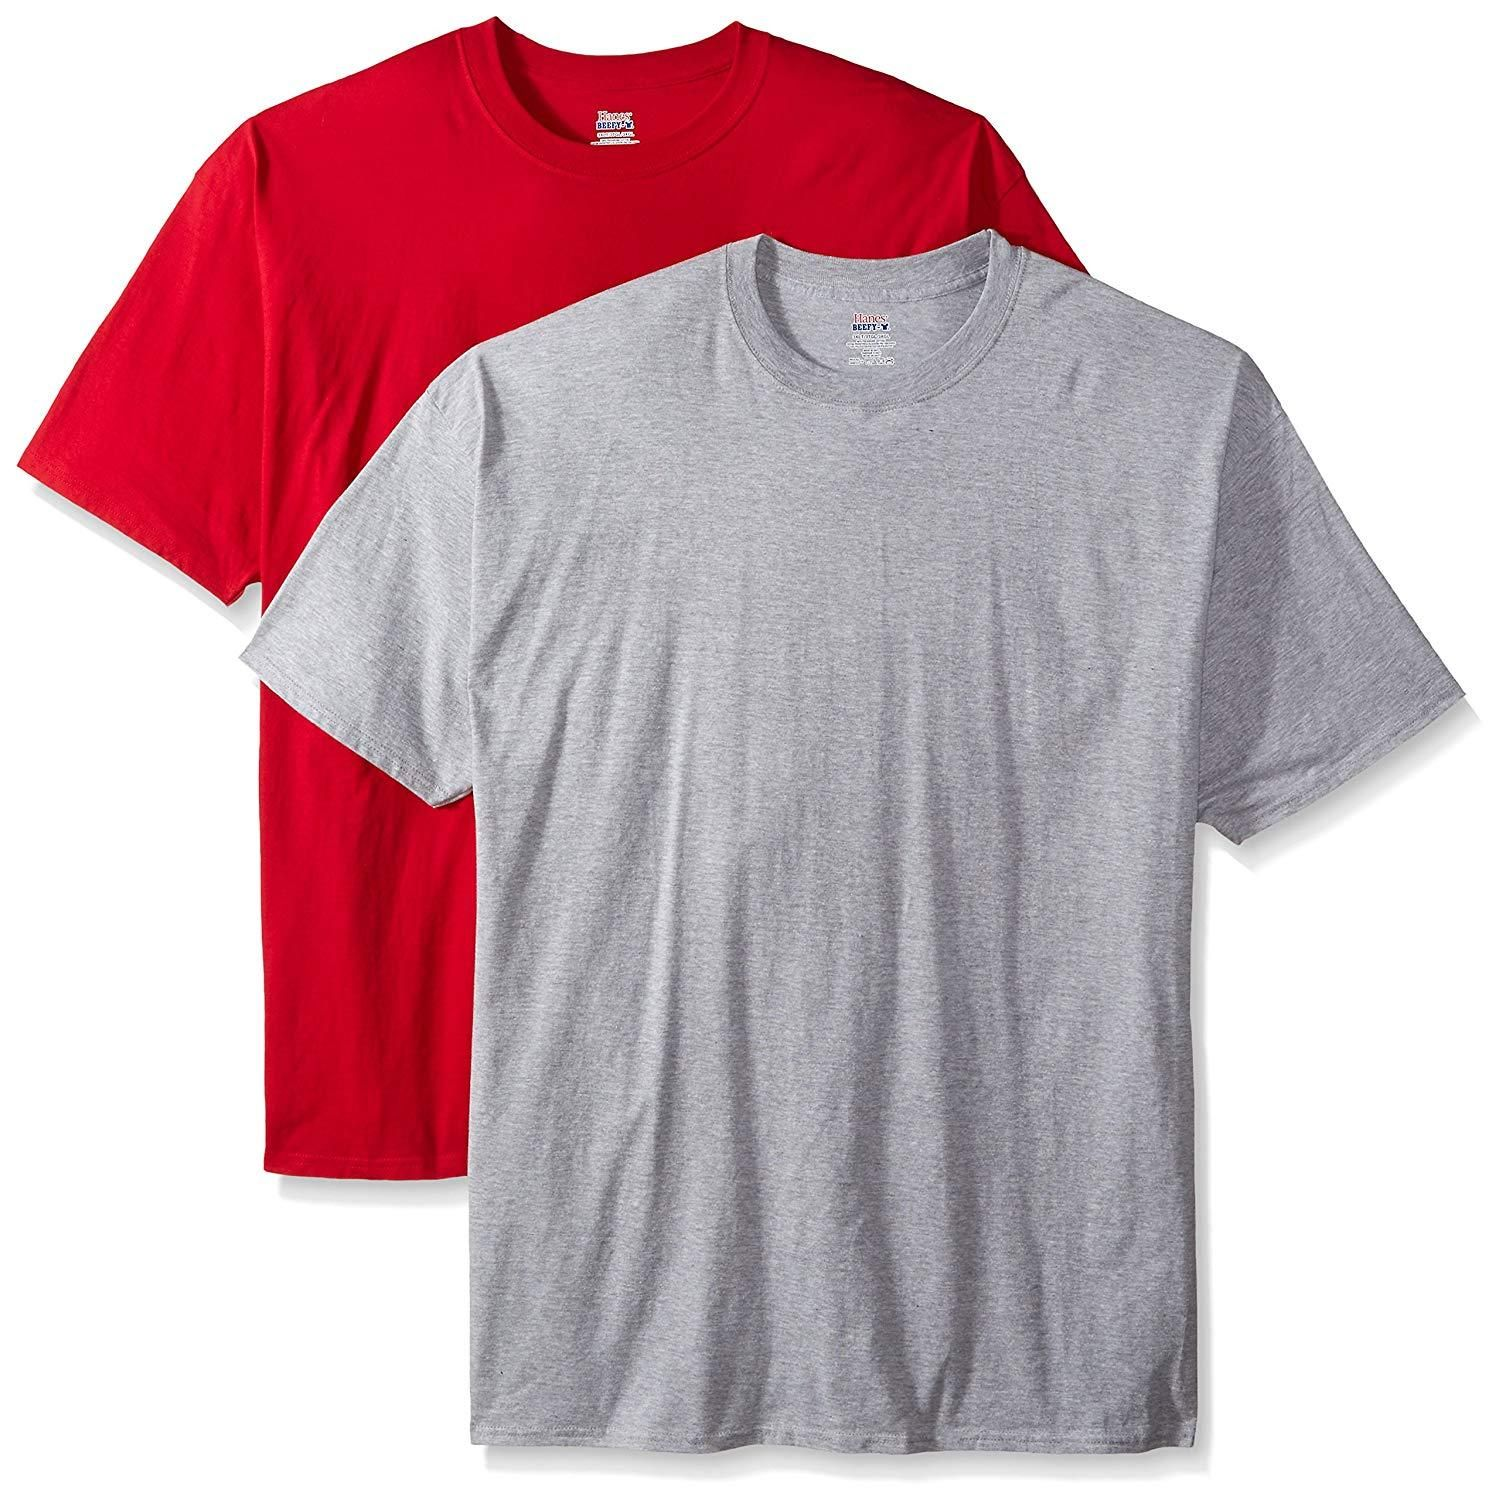 b76384f71656 Hanes Men's Tall Short-Sleeve Beefy T-Shirt (Pack of Two) in 2019 ...